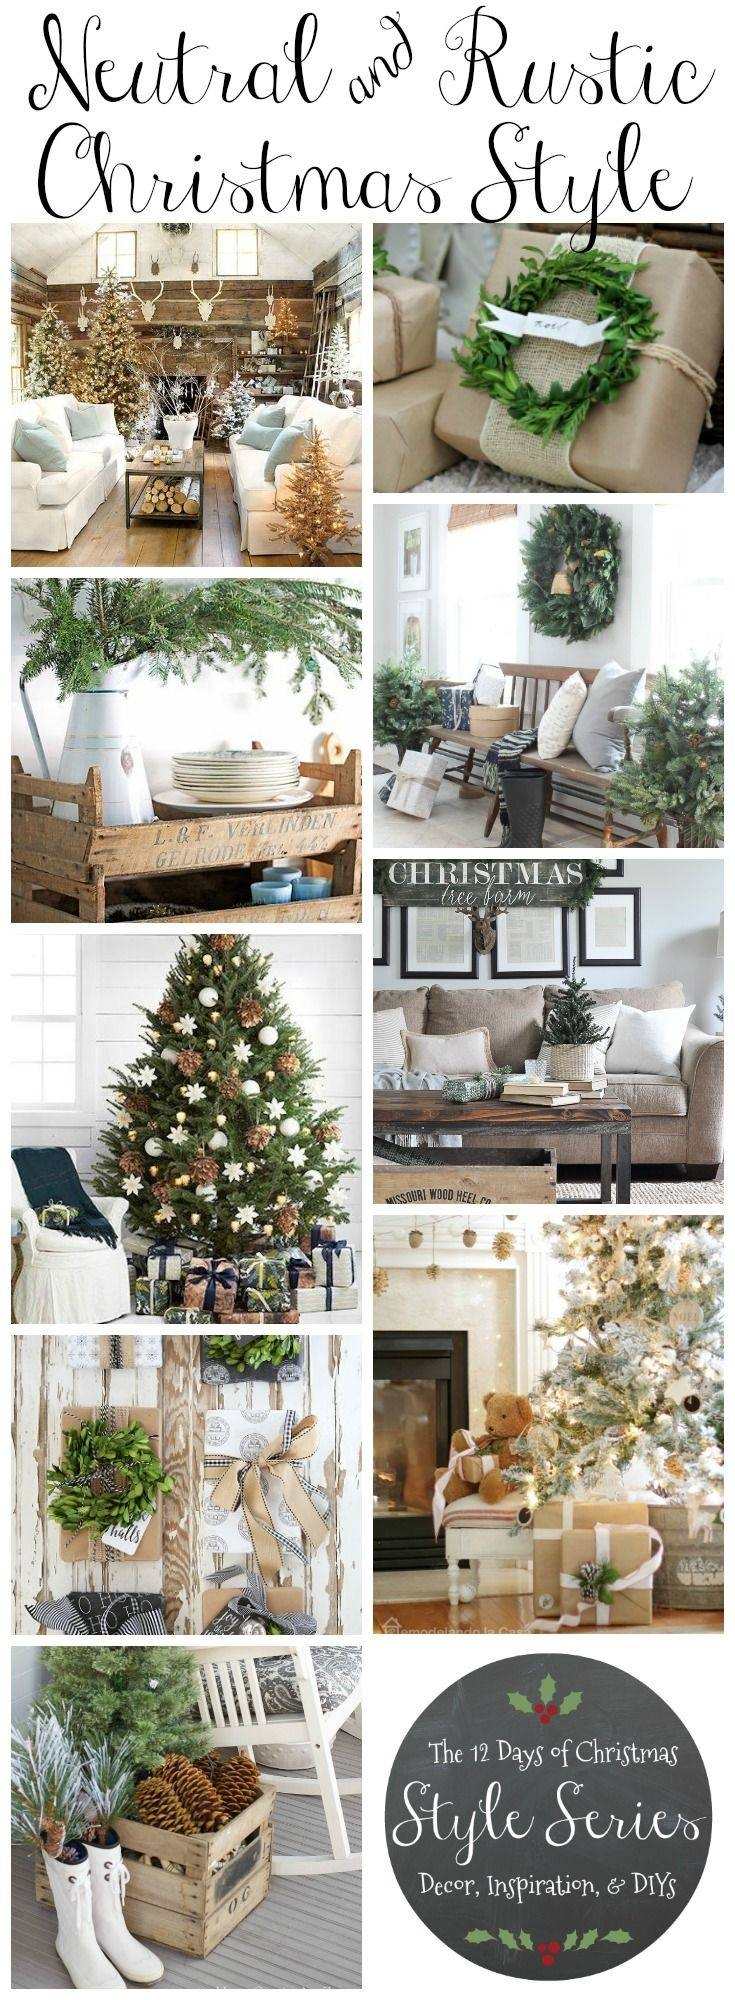 Best 25+ Rustic Christmas Decorations Ideas On Pinterest | Rustic Regarding Rustic Christmas Coffee Table Decors (View 28 of 30)